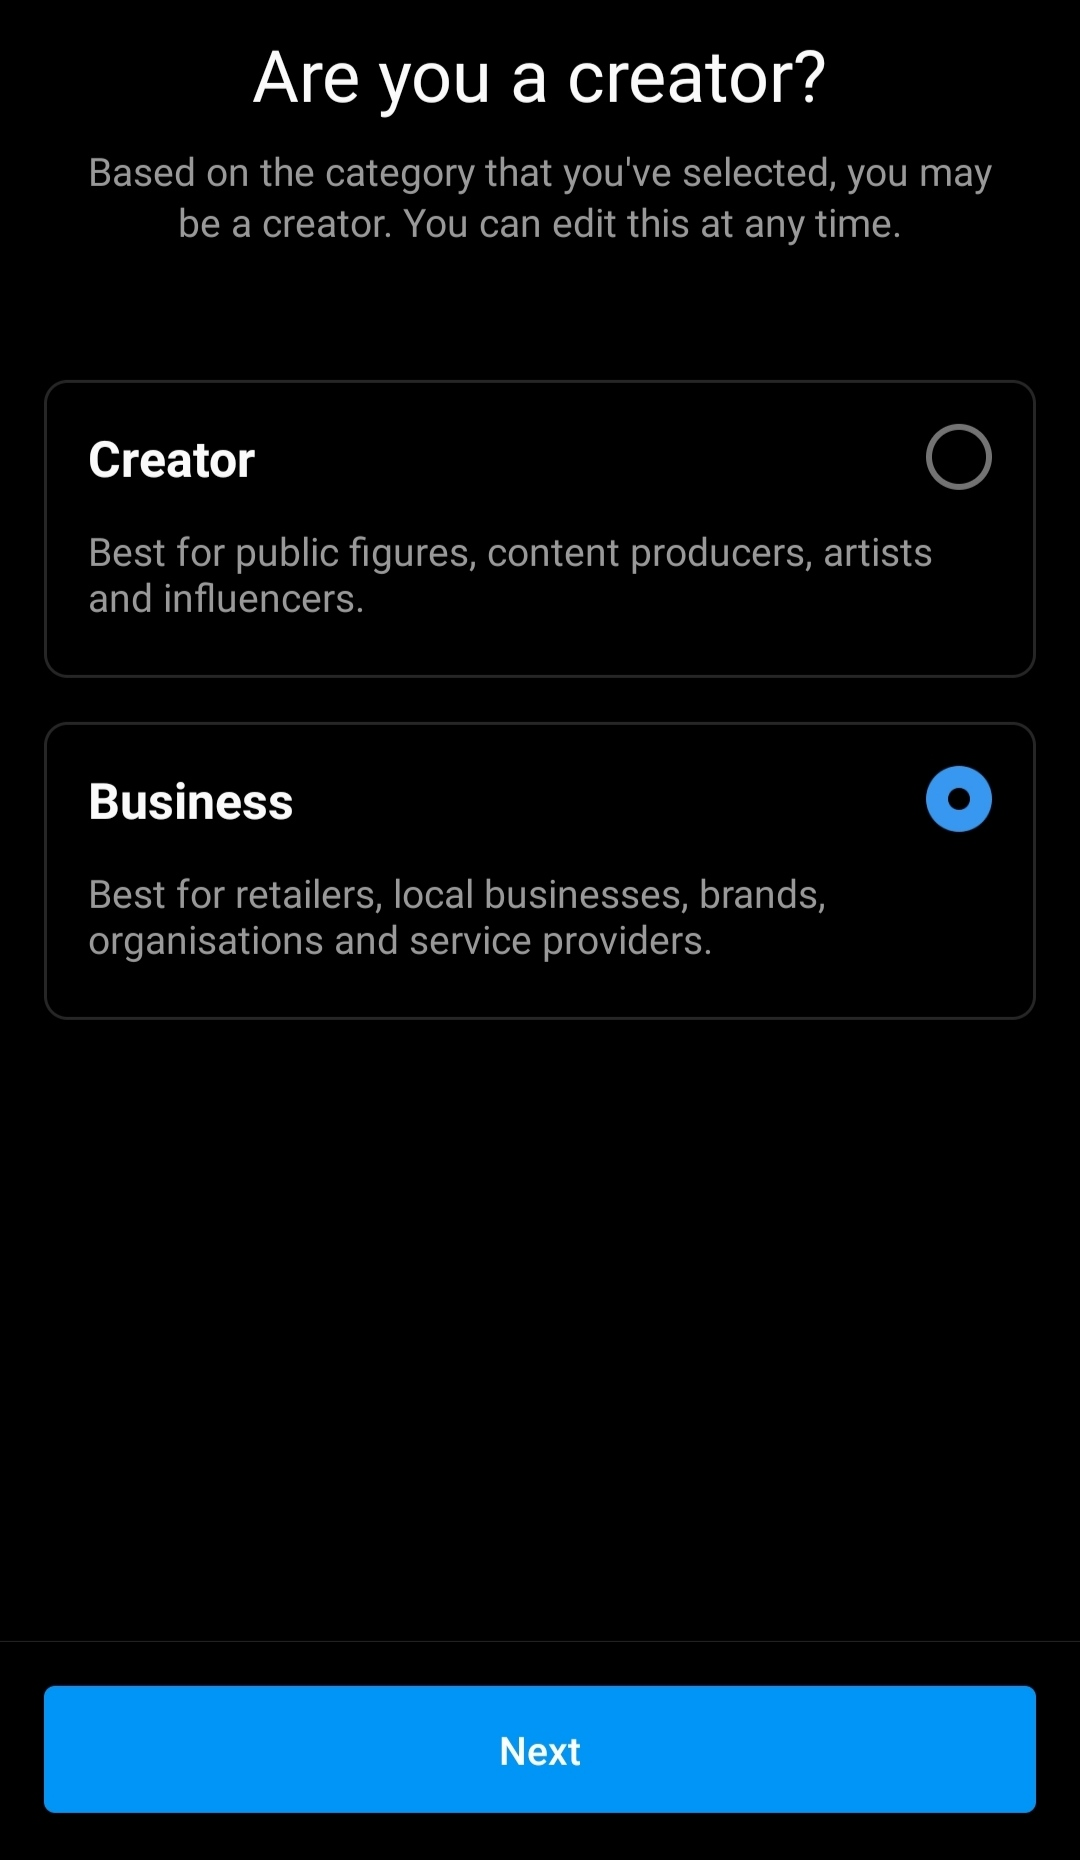 Choose Business Or Creator  - Choose Business or Creator - How to Set Up Instagram Shop for Online Business?